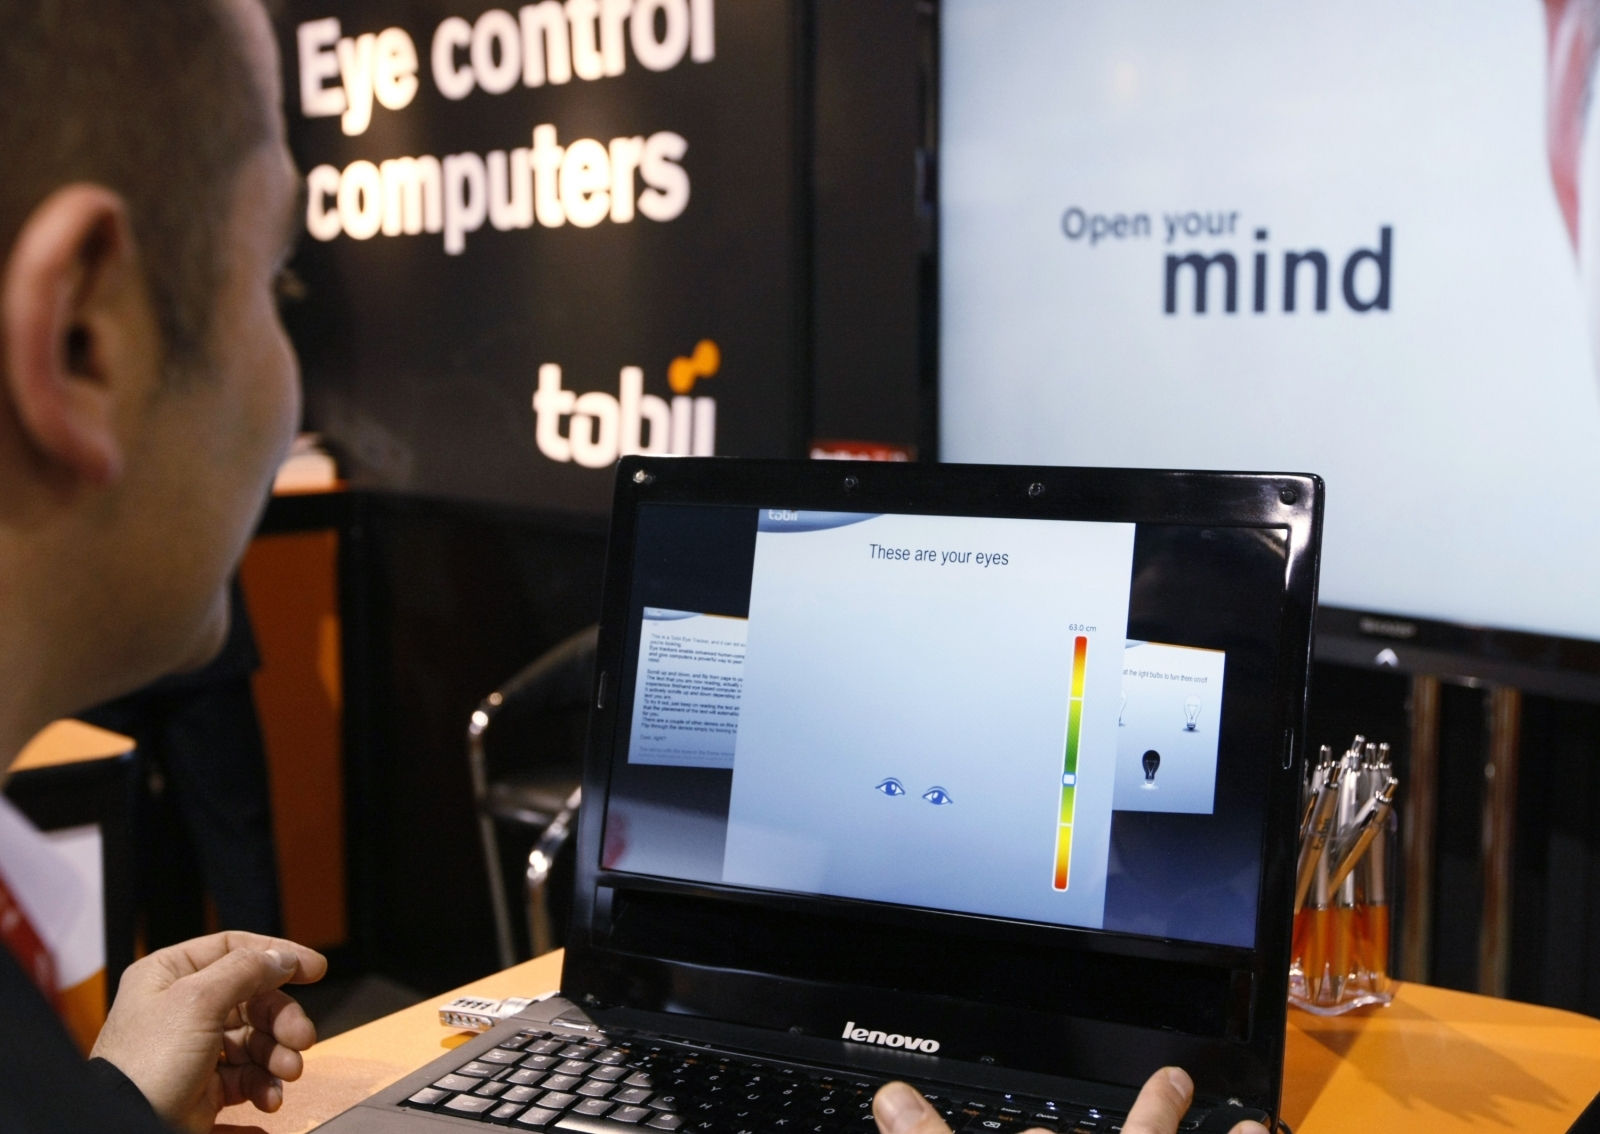 Windows 10 will get eye-tracking